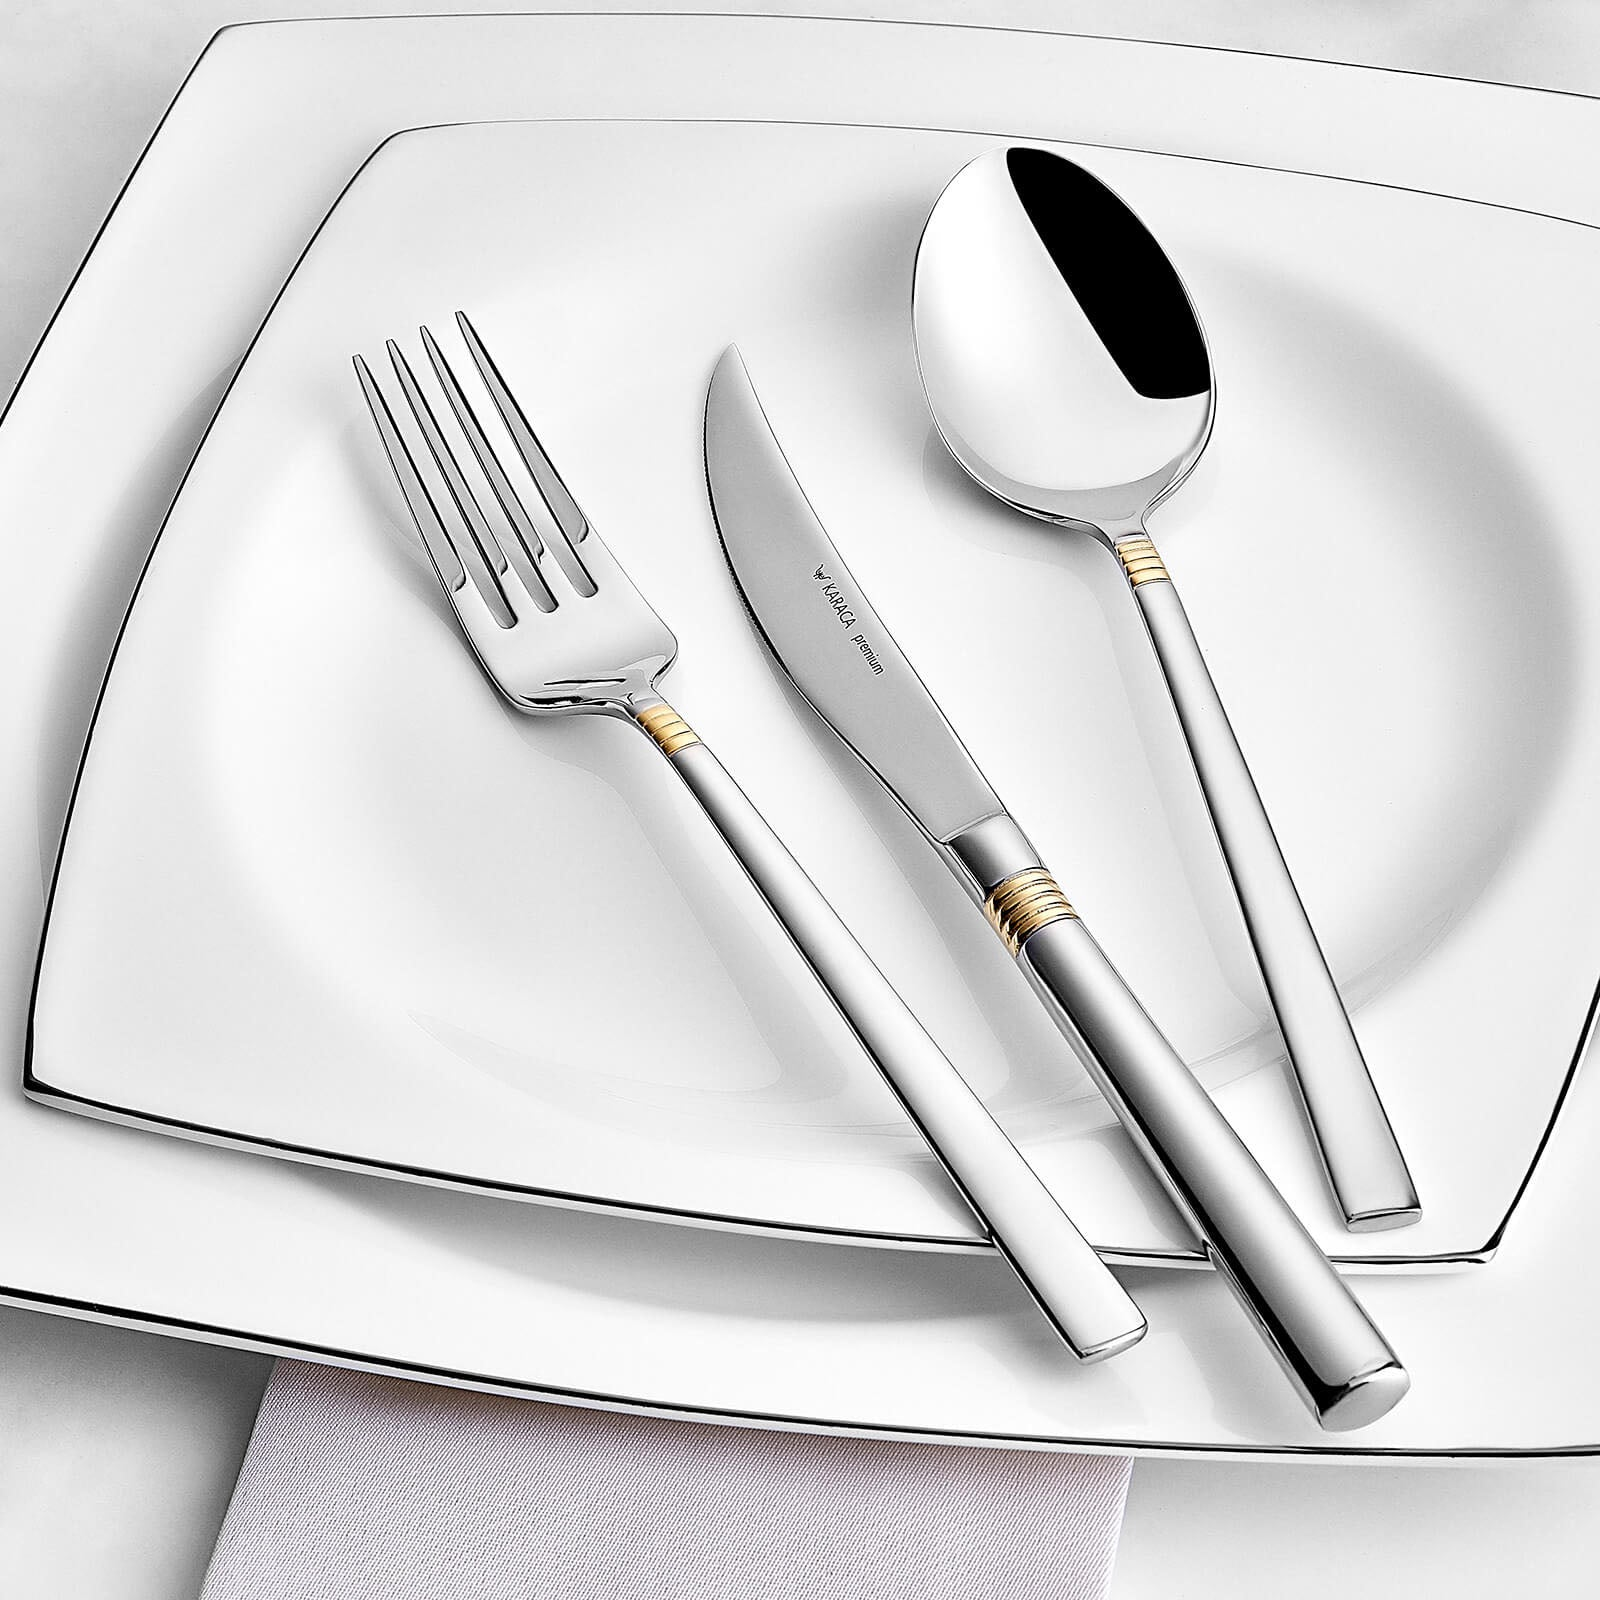 Nil Gold 84 Pieces Cutlery Set With Box 153.02.01.0233